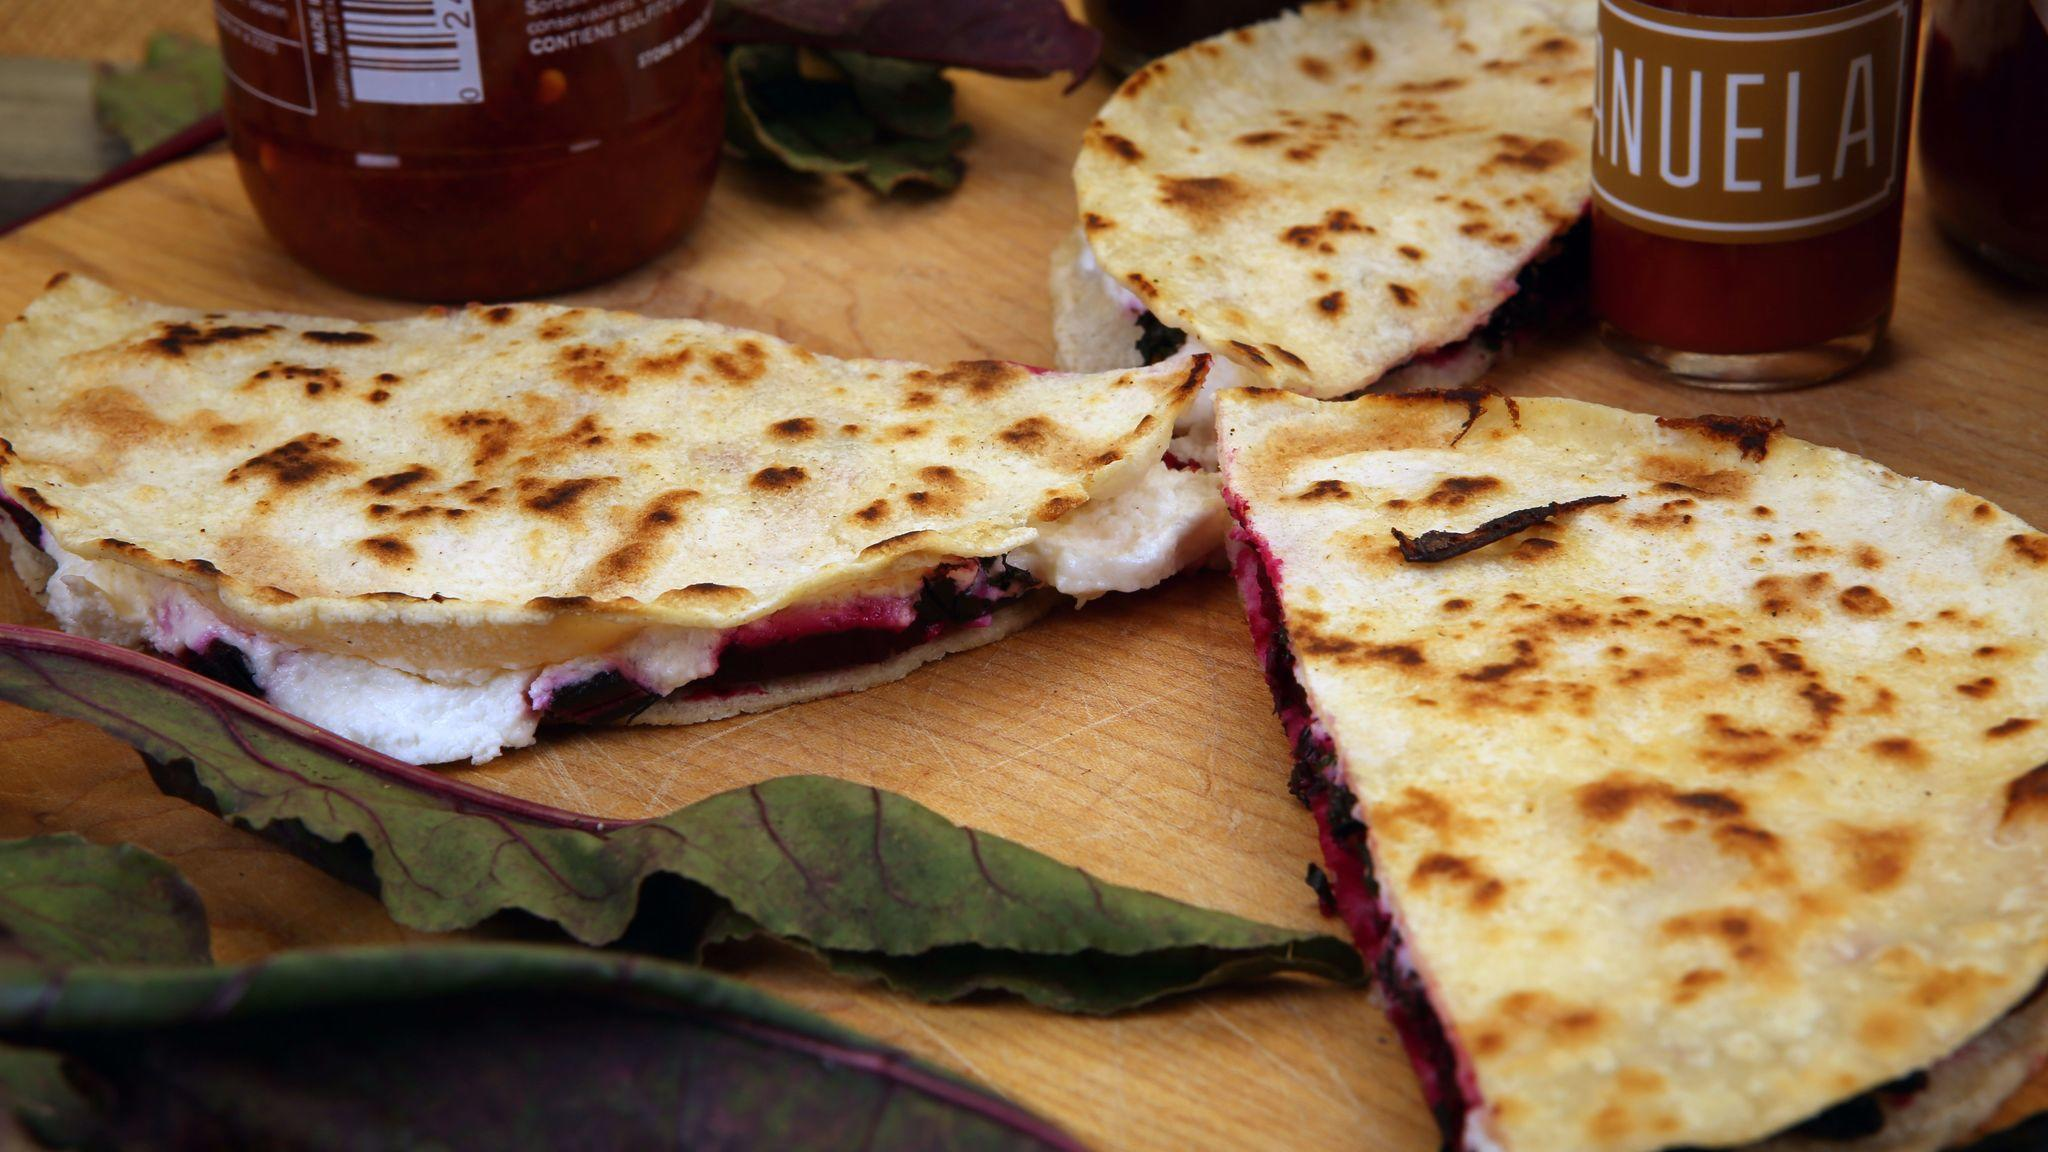 Beet green, roasted beets and goat cheese quesadillas